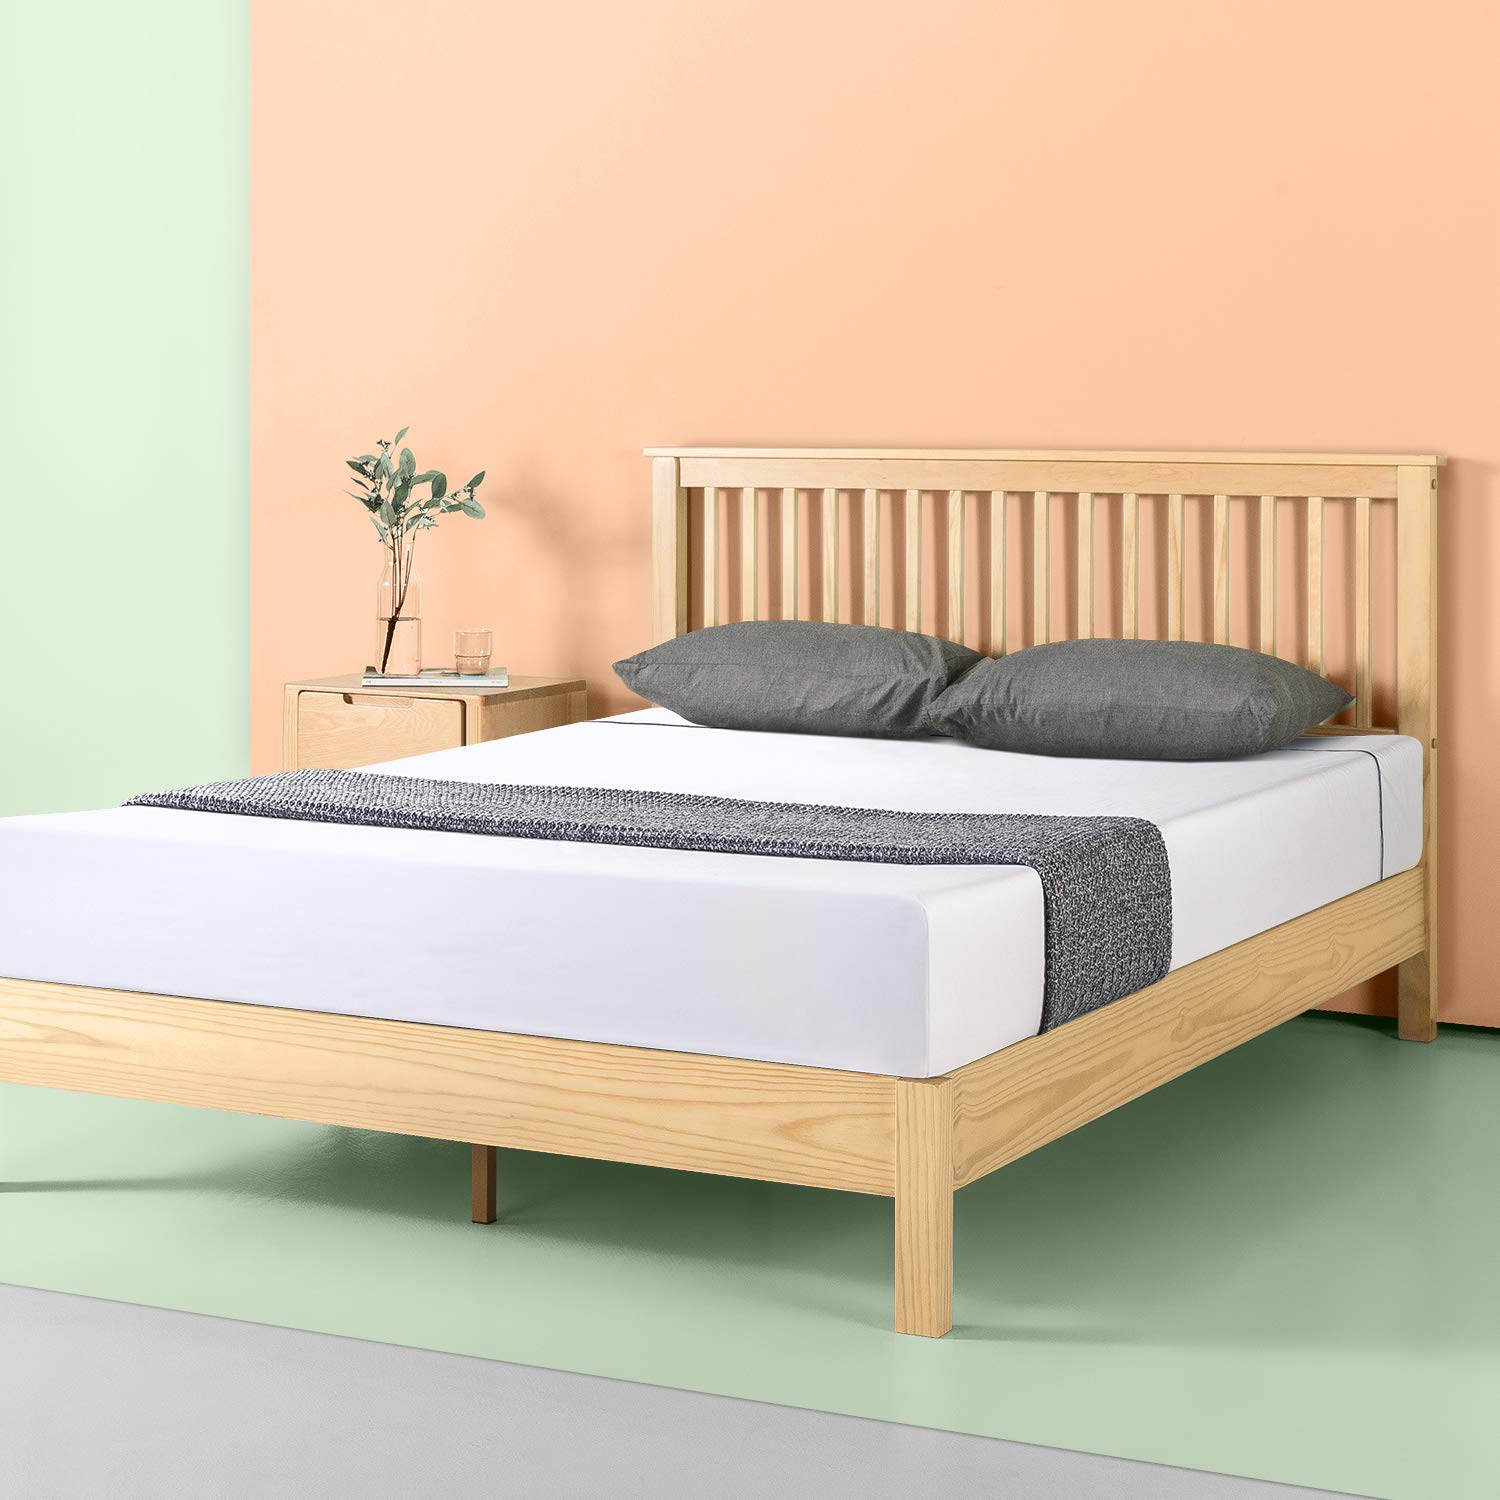 Zinus Becky Farmhouse Wood Platform Bed, Queen